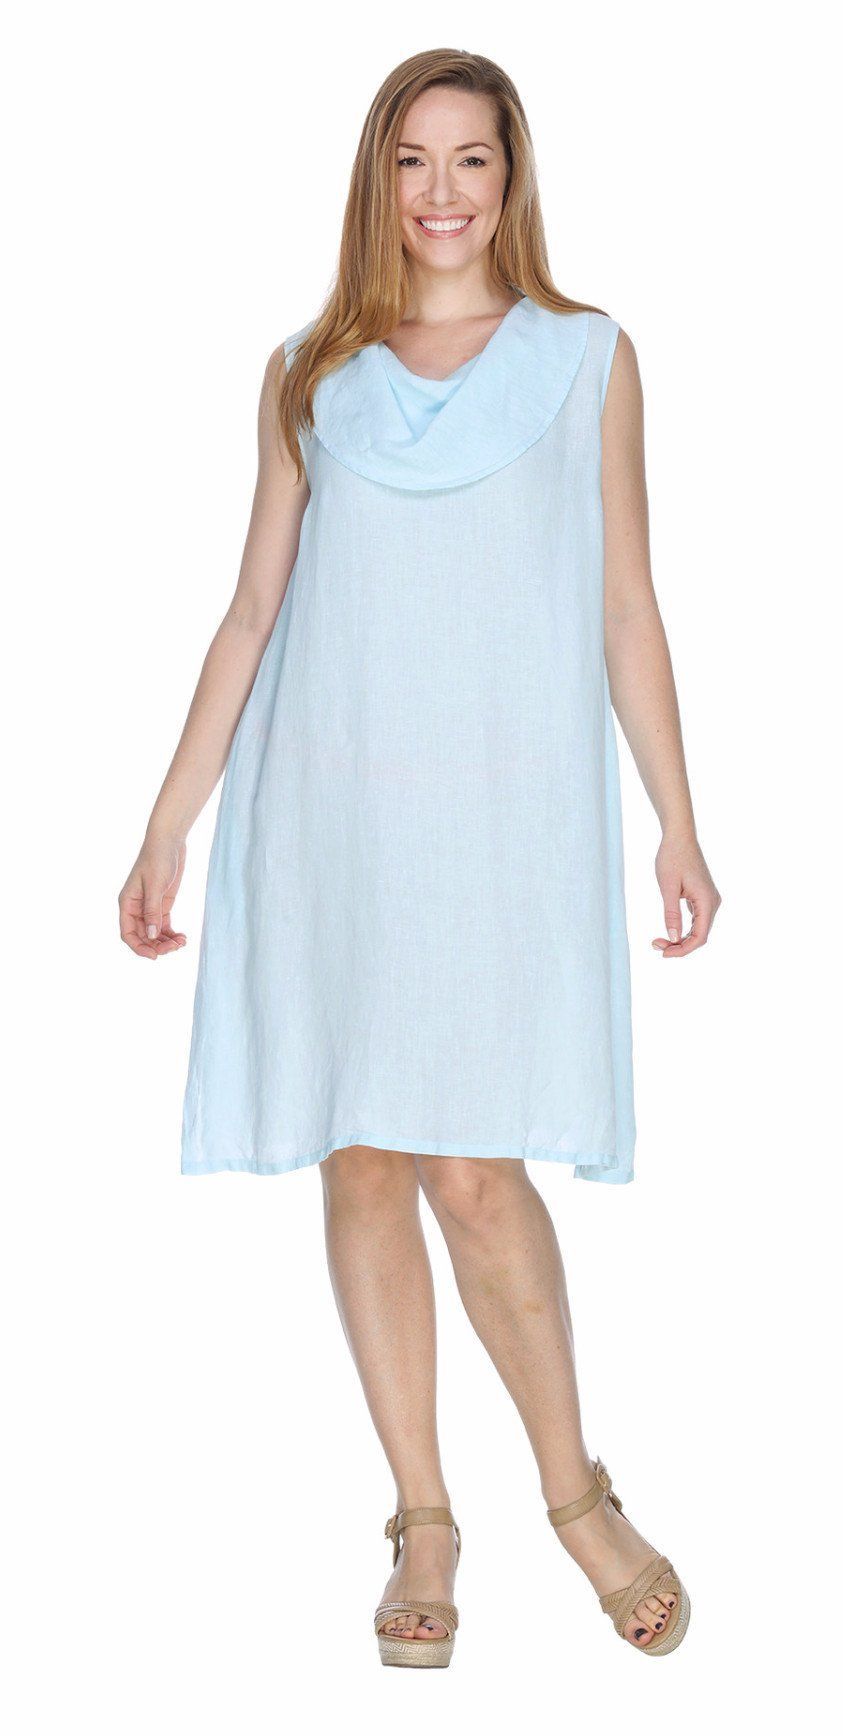 ce3253e3cd Match Point Linen Sleeveless Cowl Neck Mid Length Dress HLD455 ...